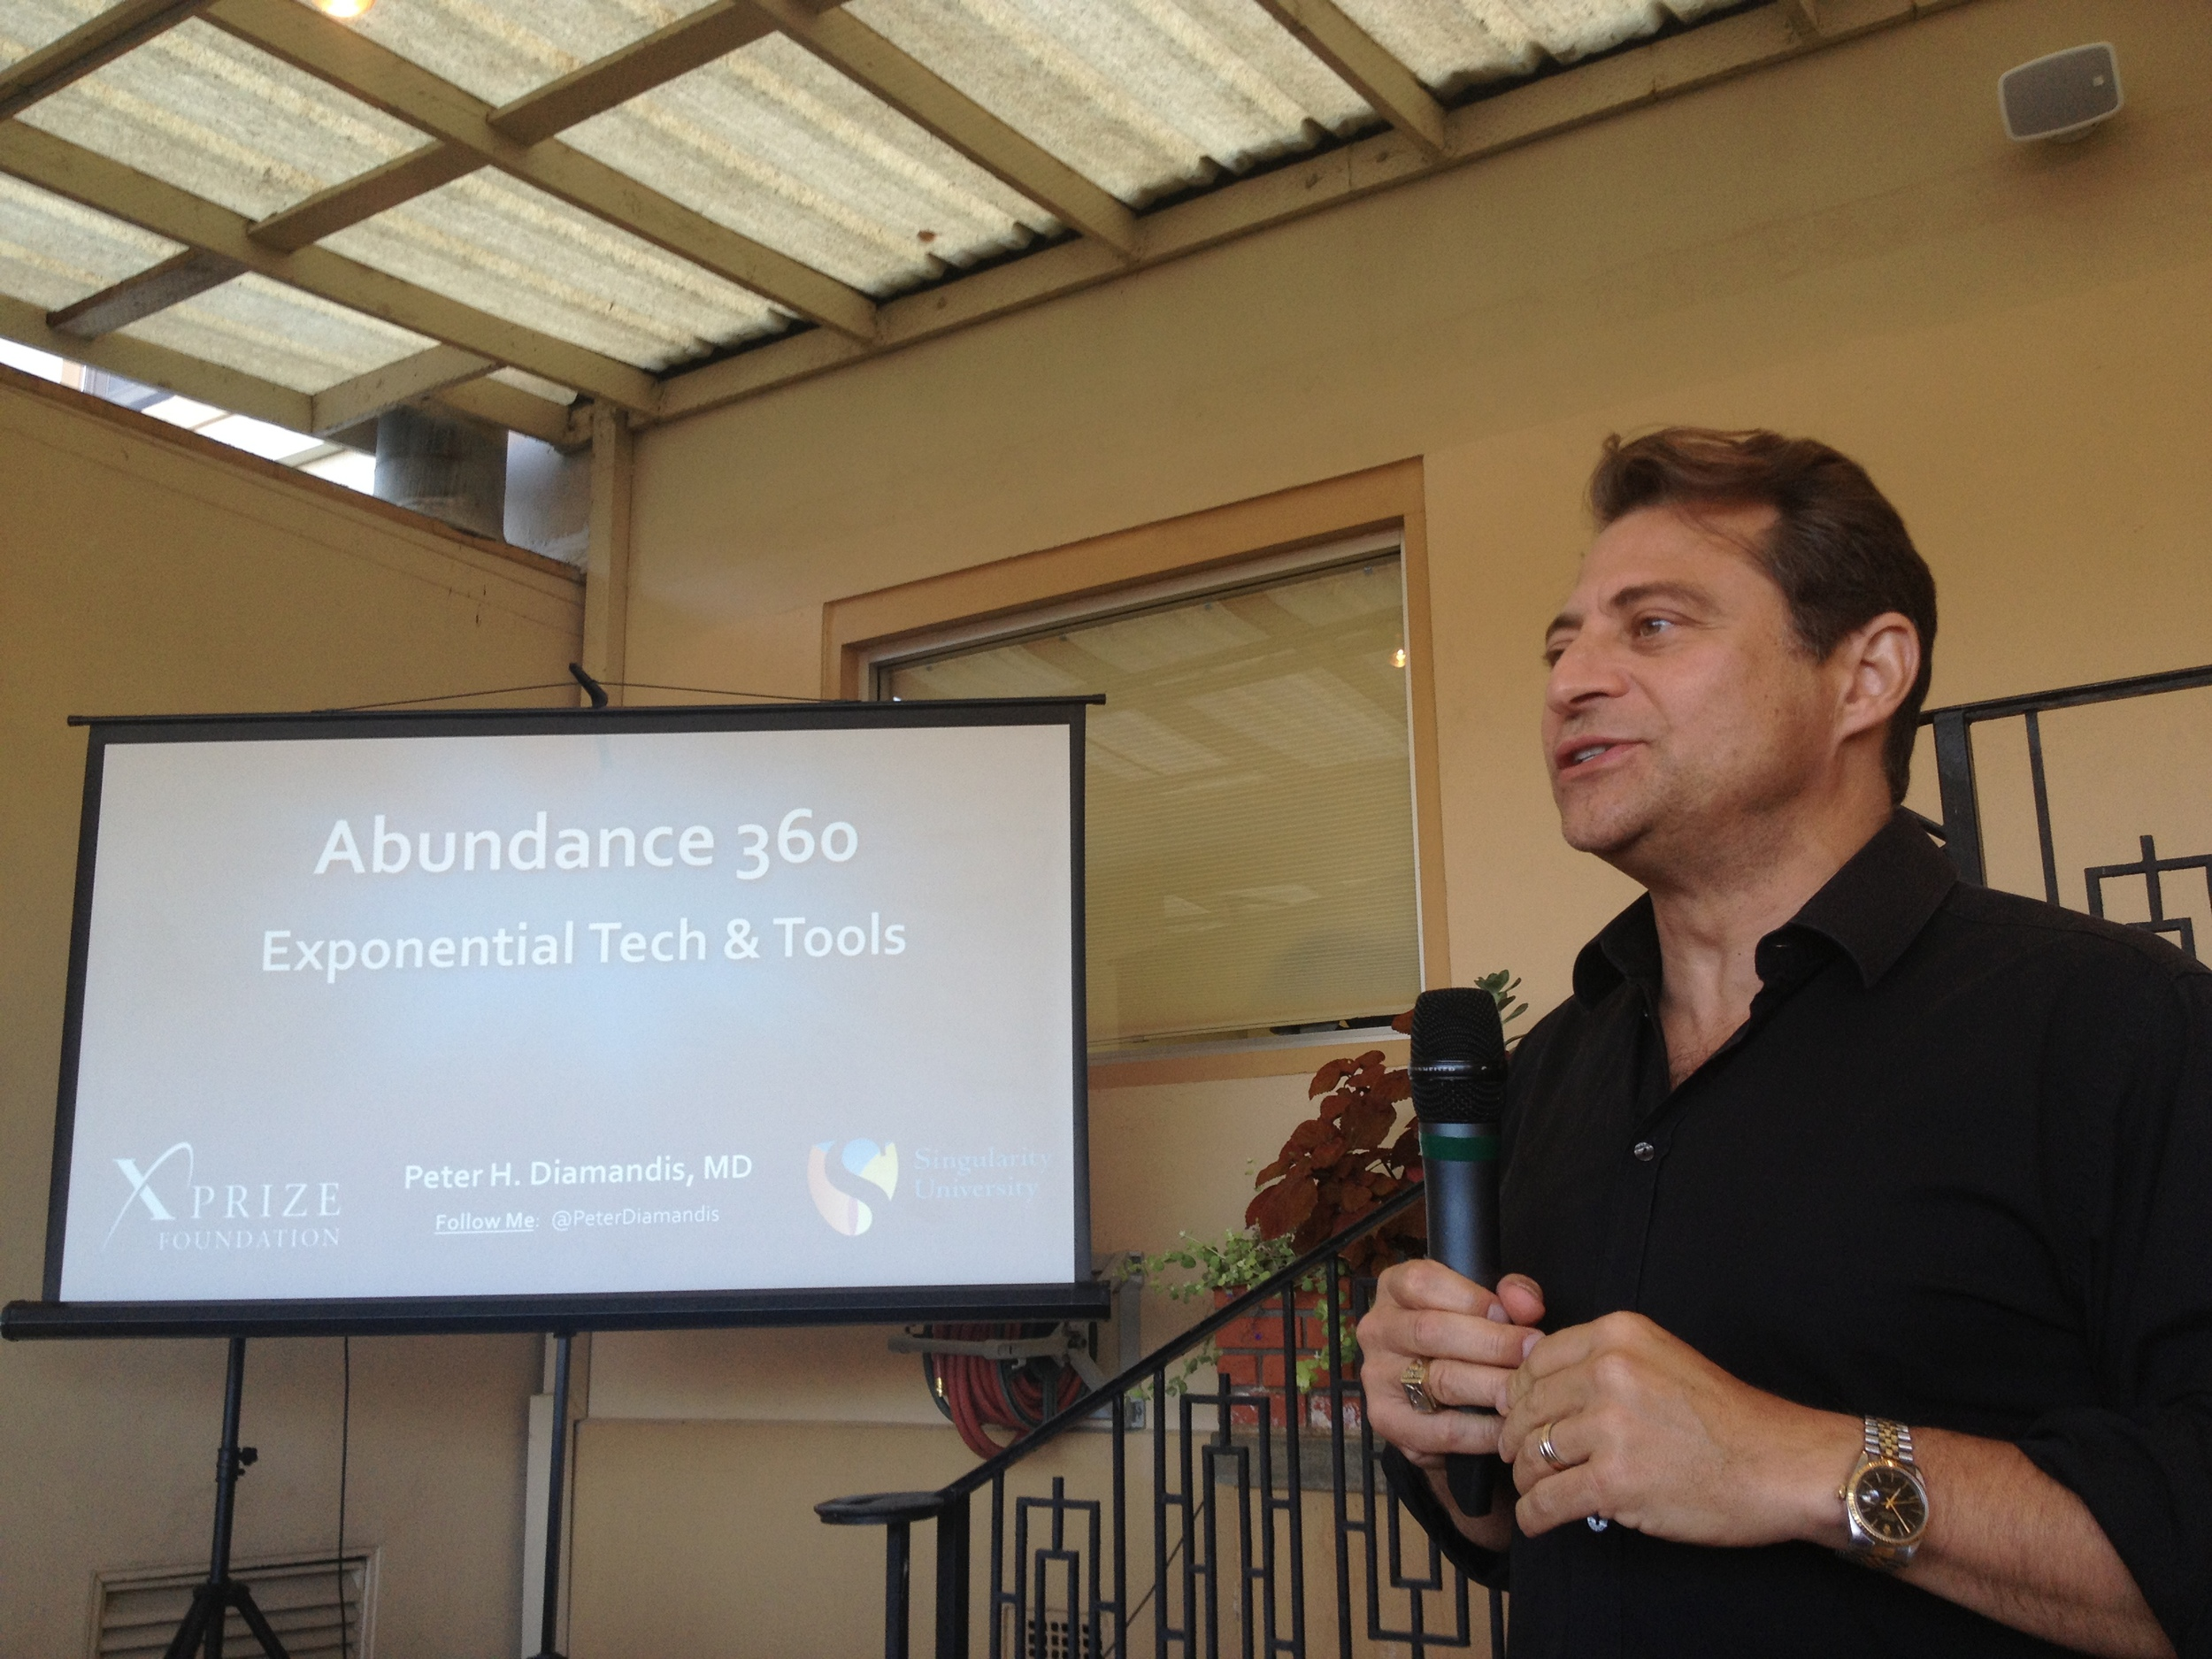 Peter Diamandis's evening lecture on Day 1